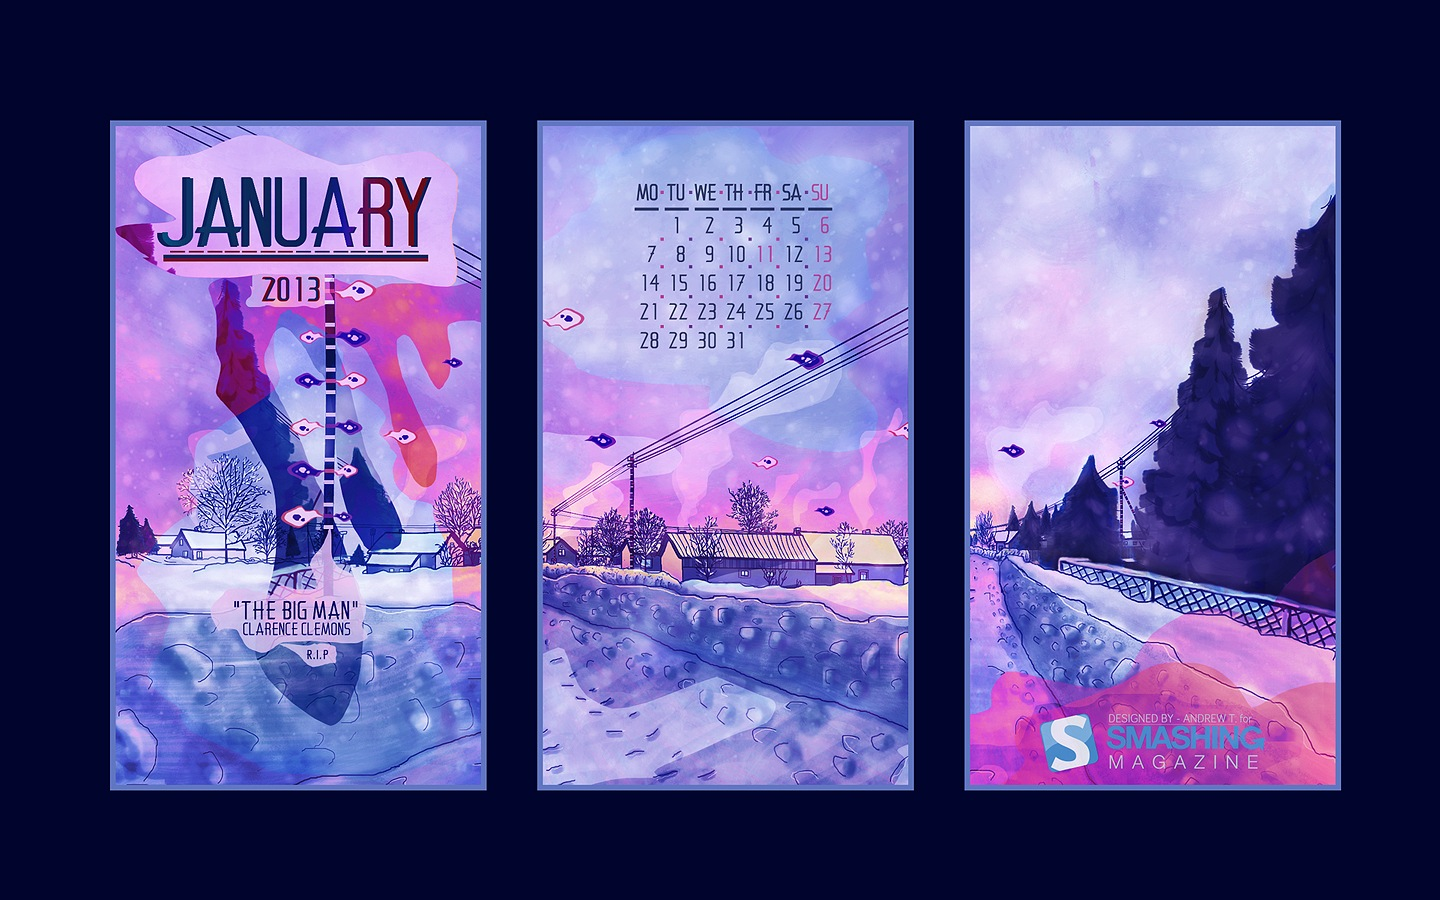 In January Calendar Wallpaper 32134